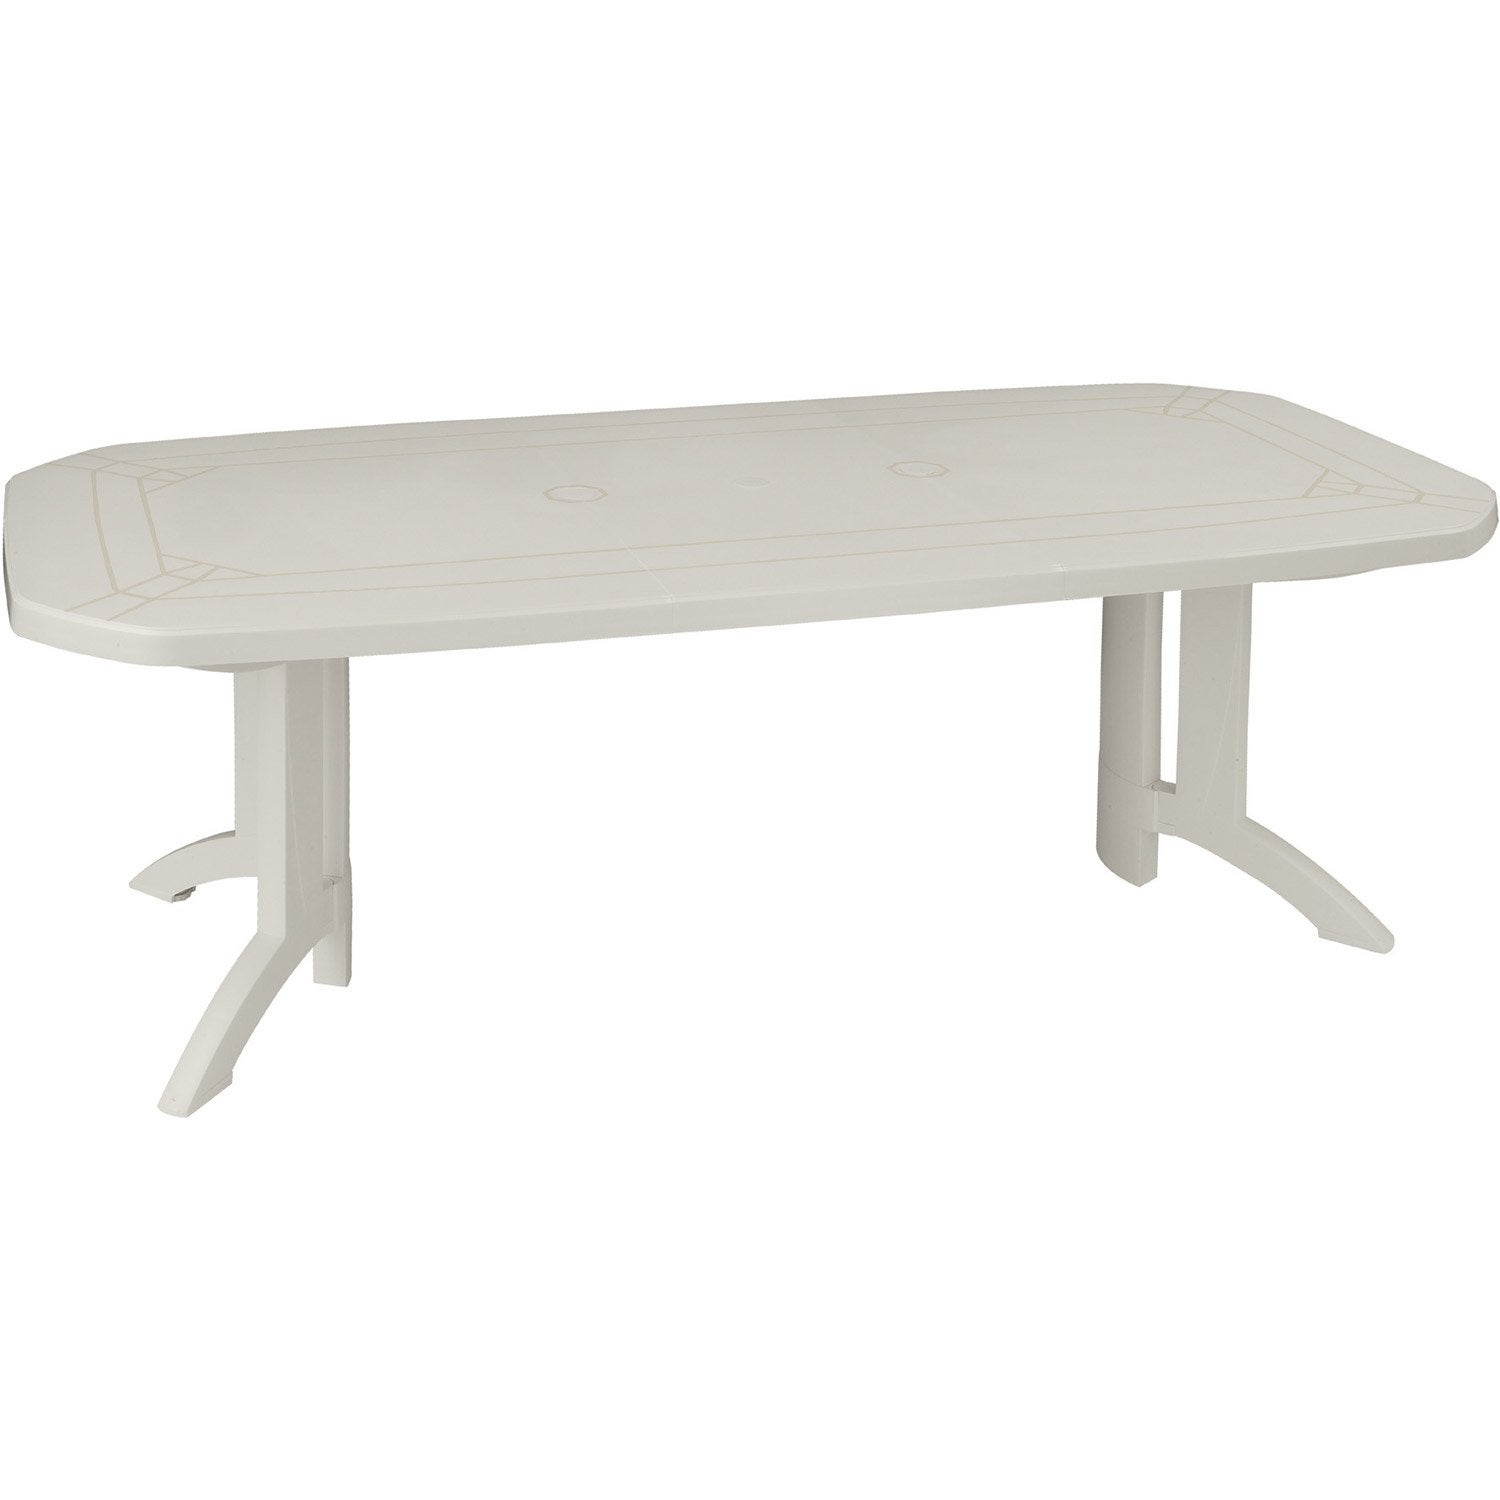 Table de jardin grosfillex v ga rectangulaire blanc 10 - Leroy merlin table pliante ...